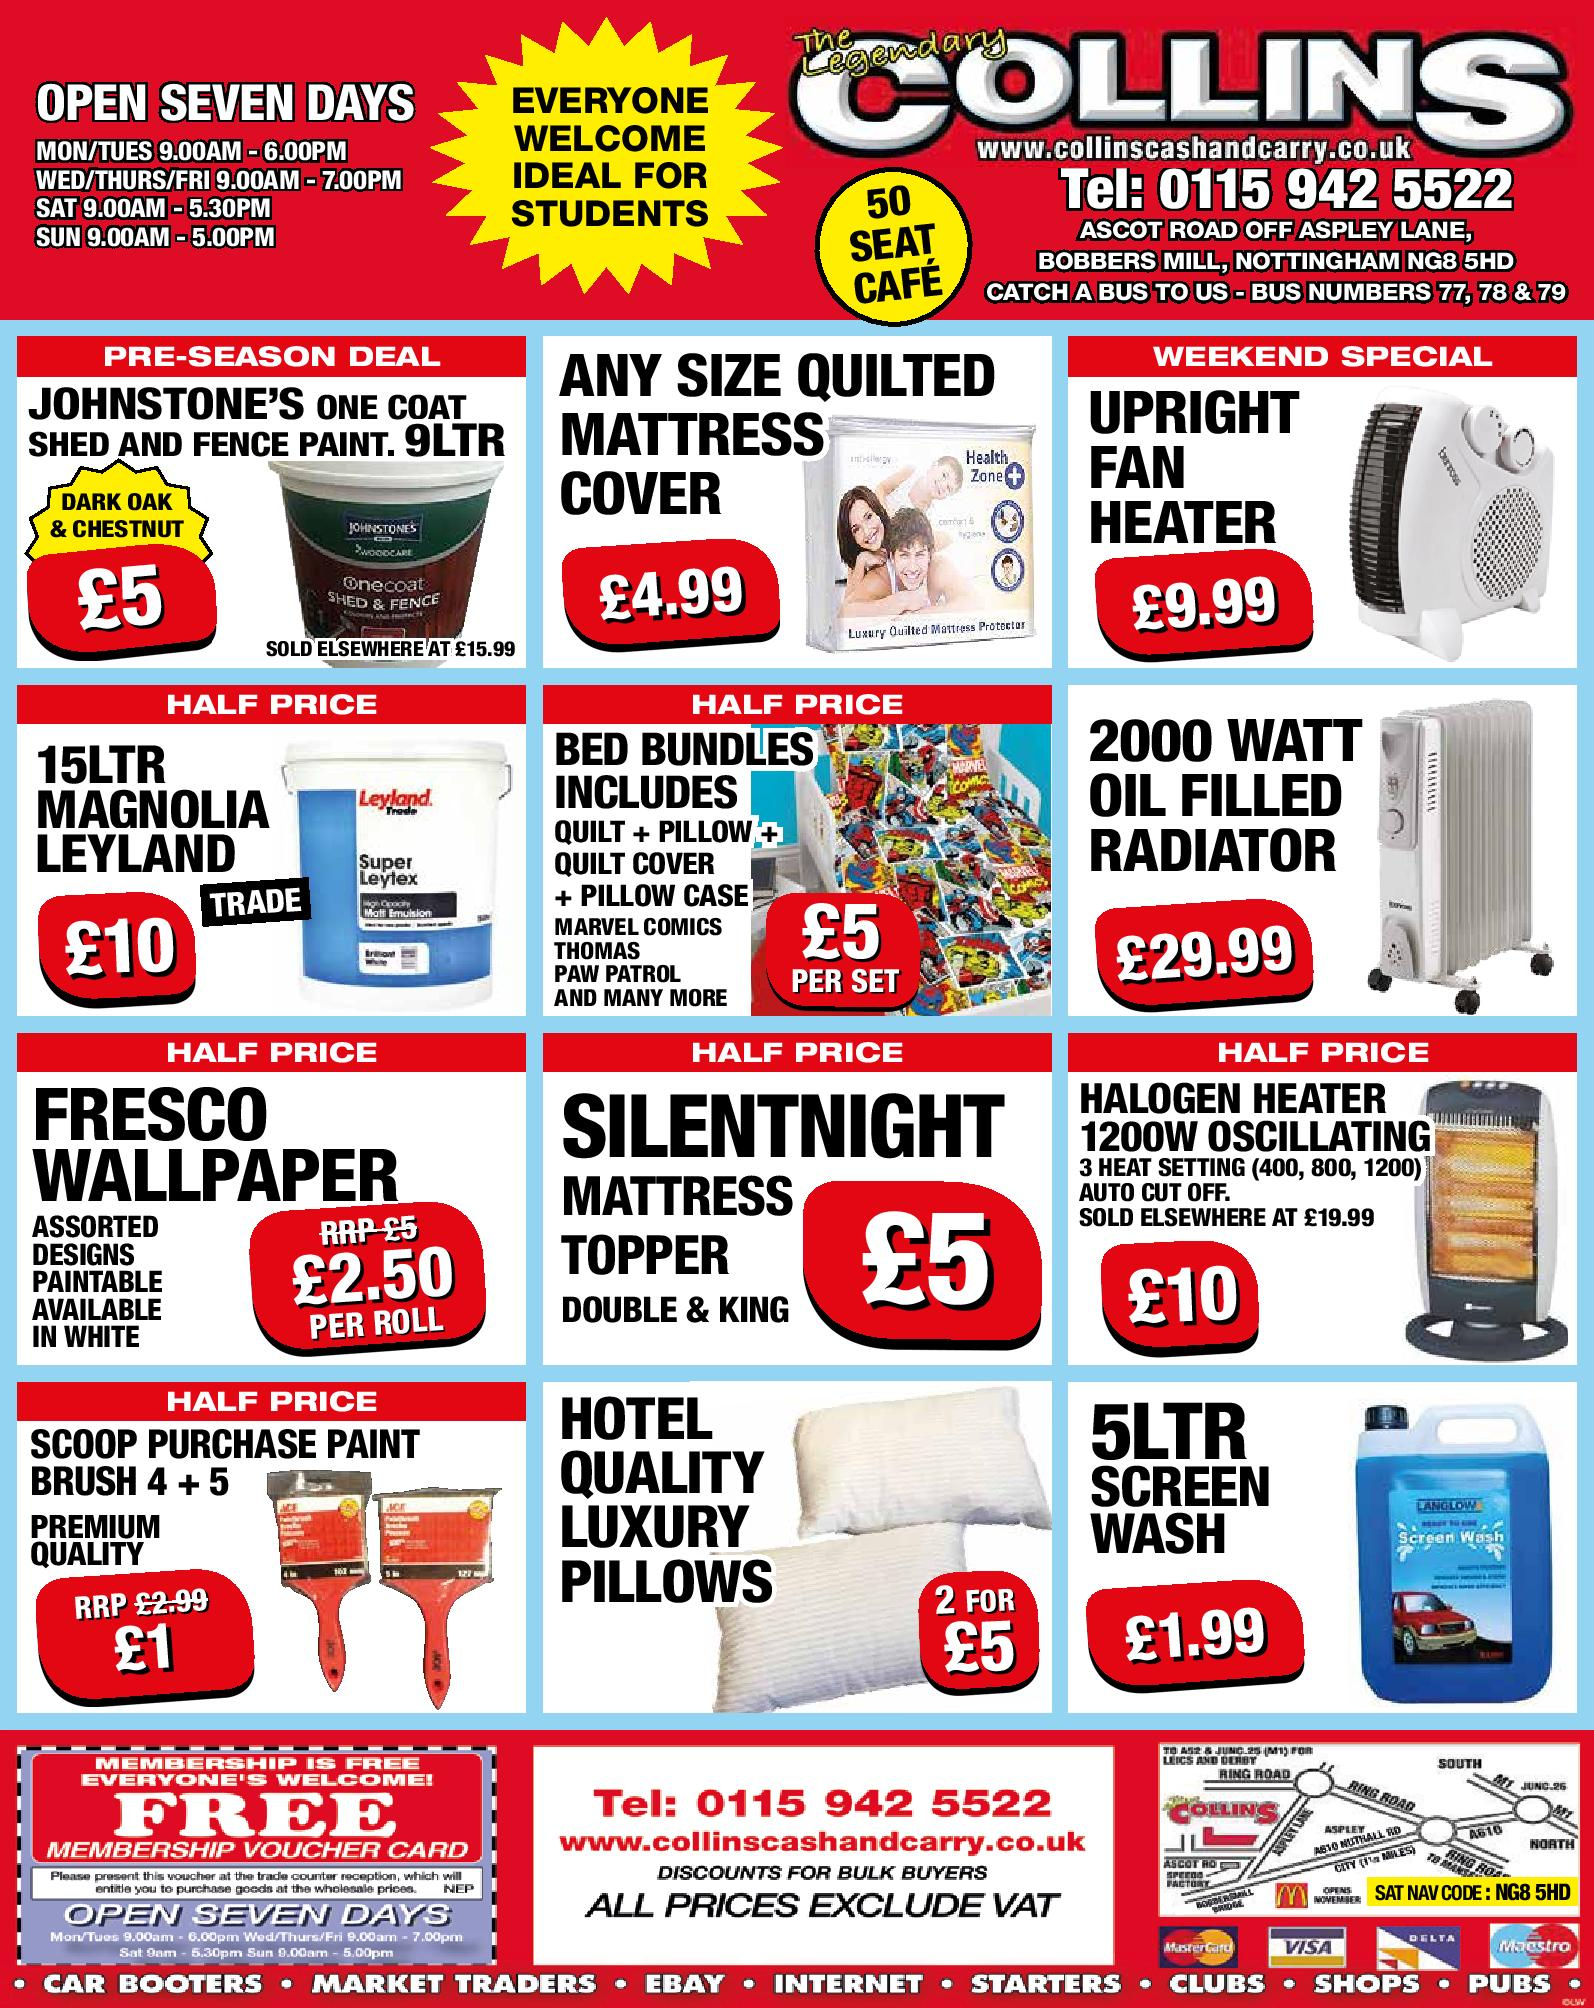 Feel the Heat – Weekly Offers at Collins Cash and Carry